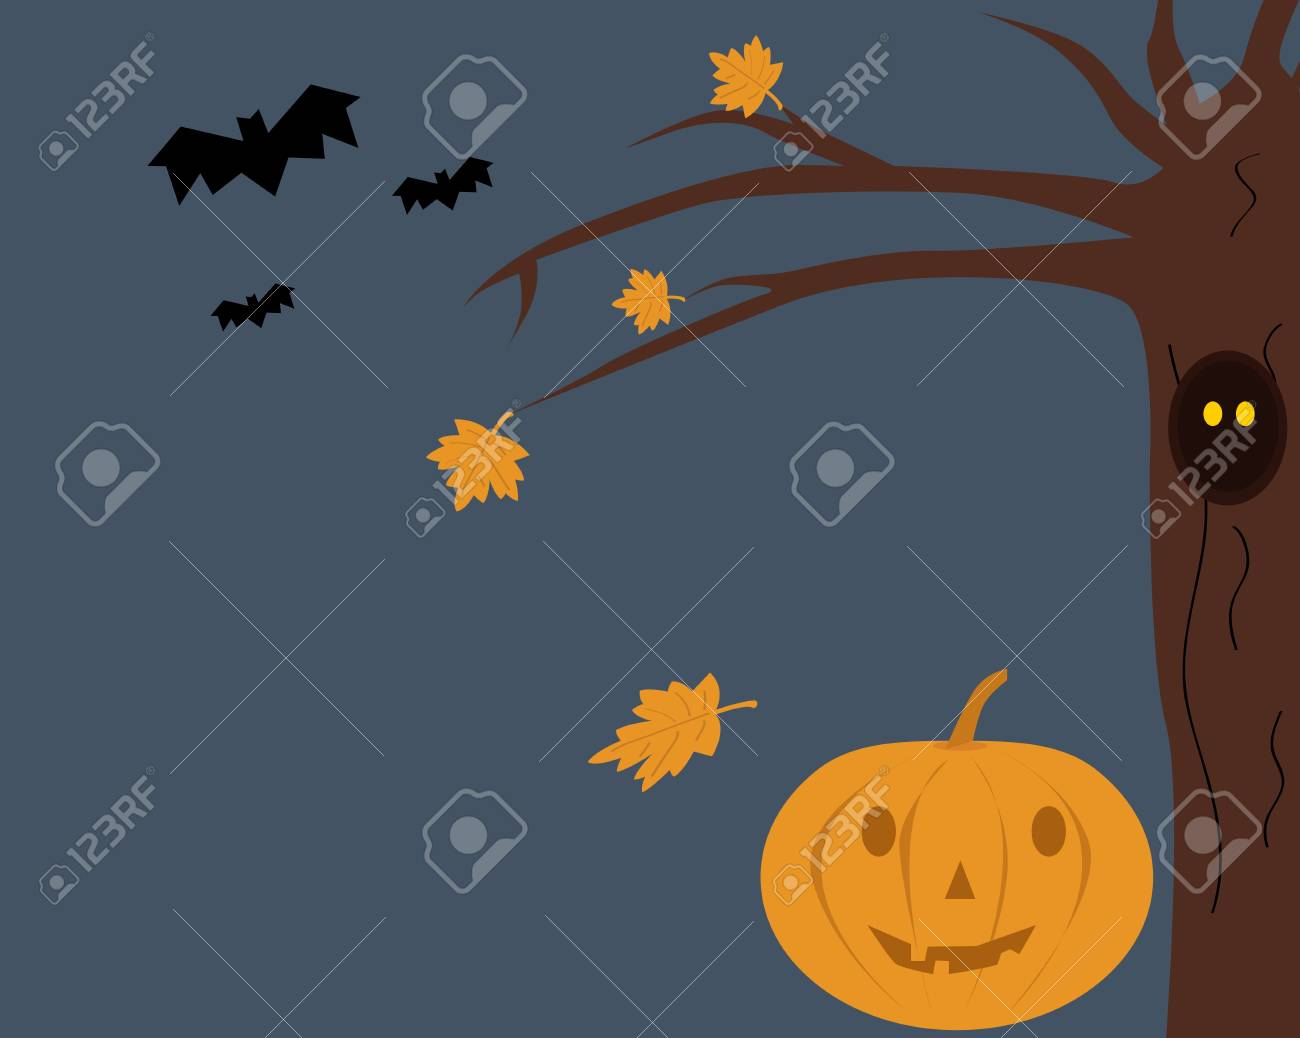 background with a hollow tree and Halloween pumpkins Stock Vector - 15792844